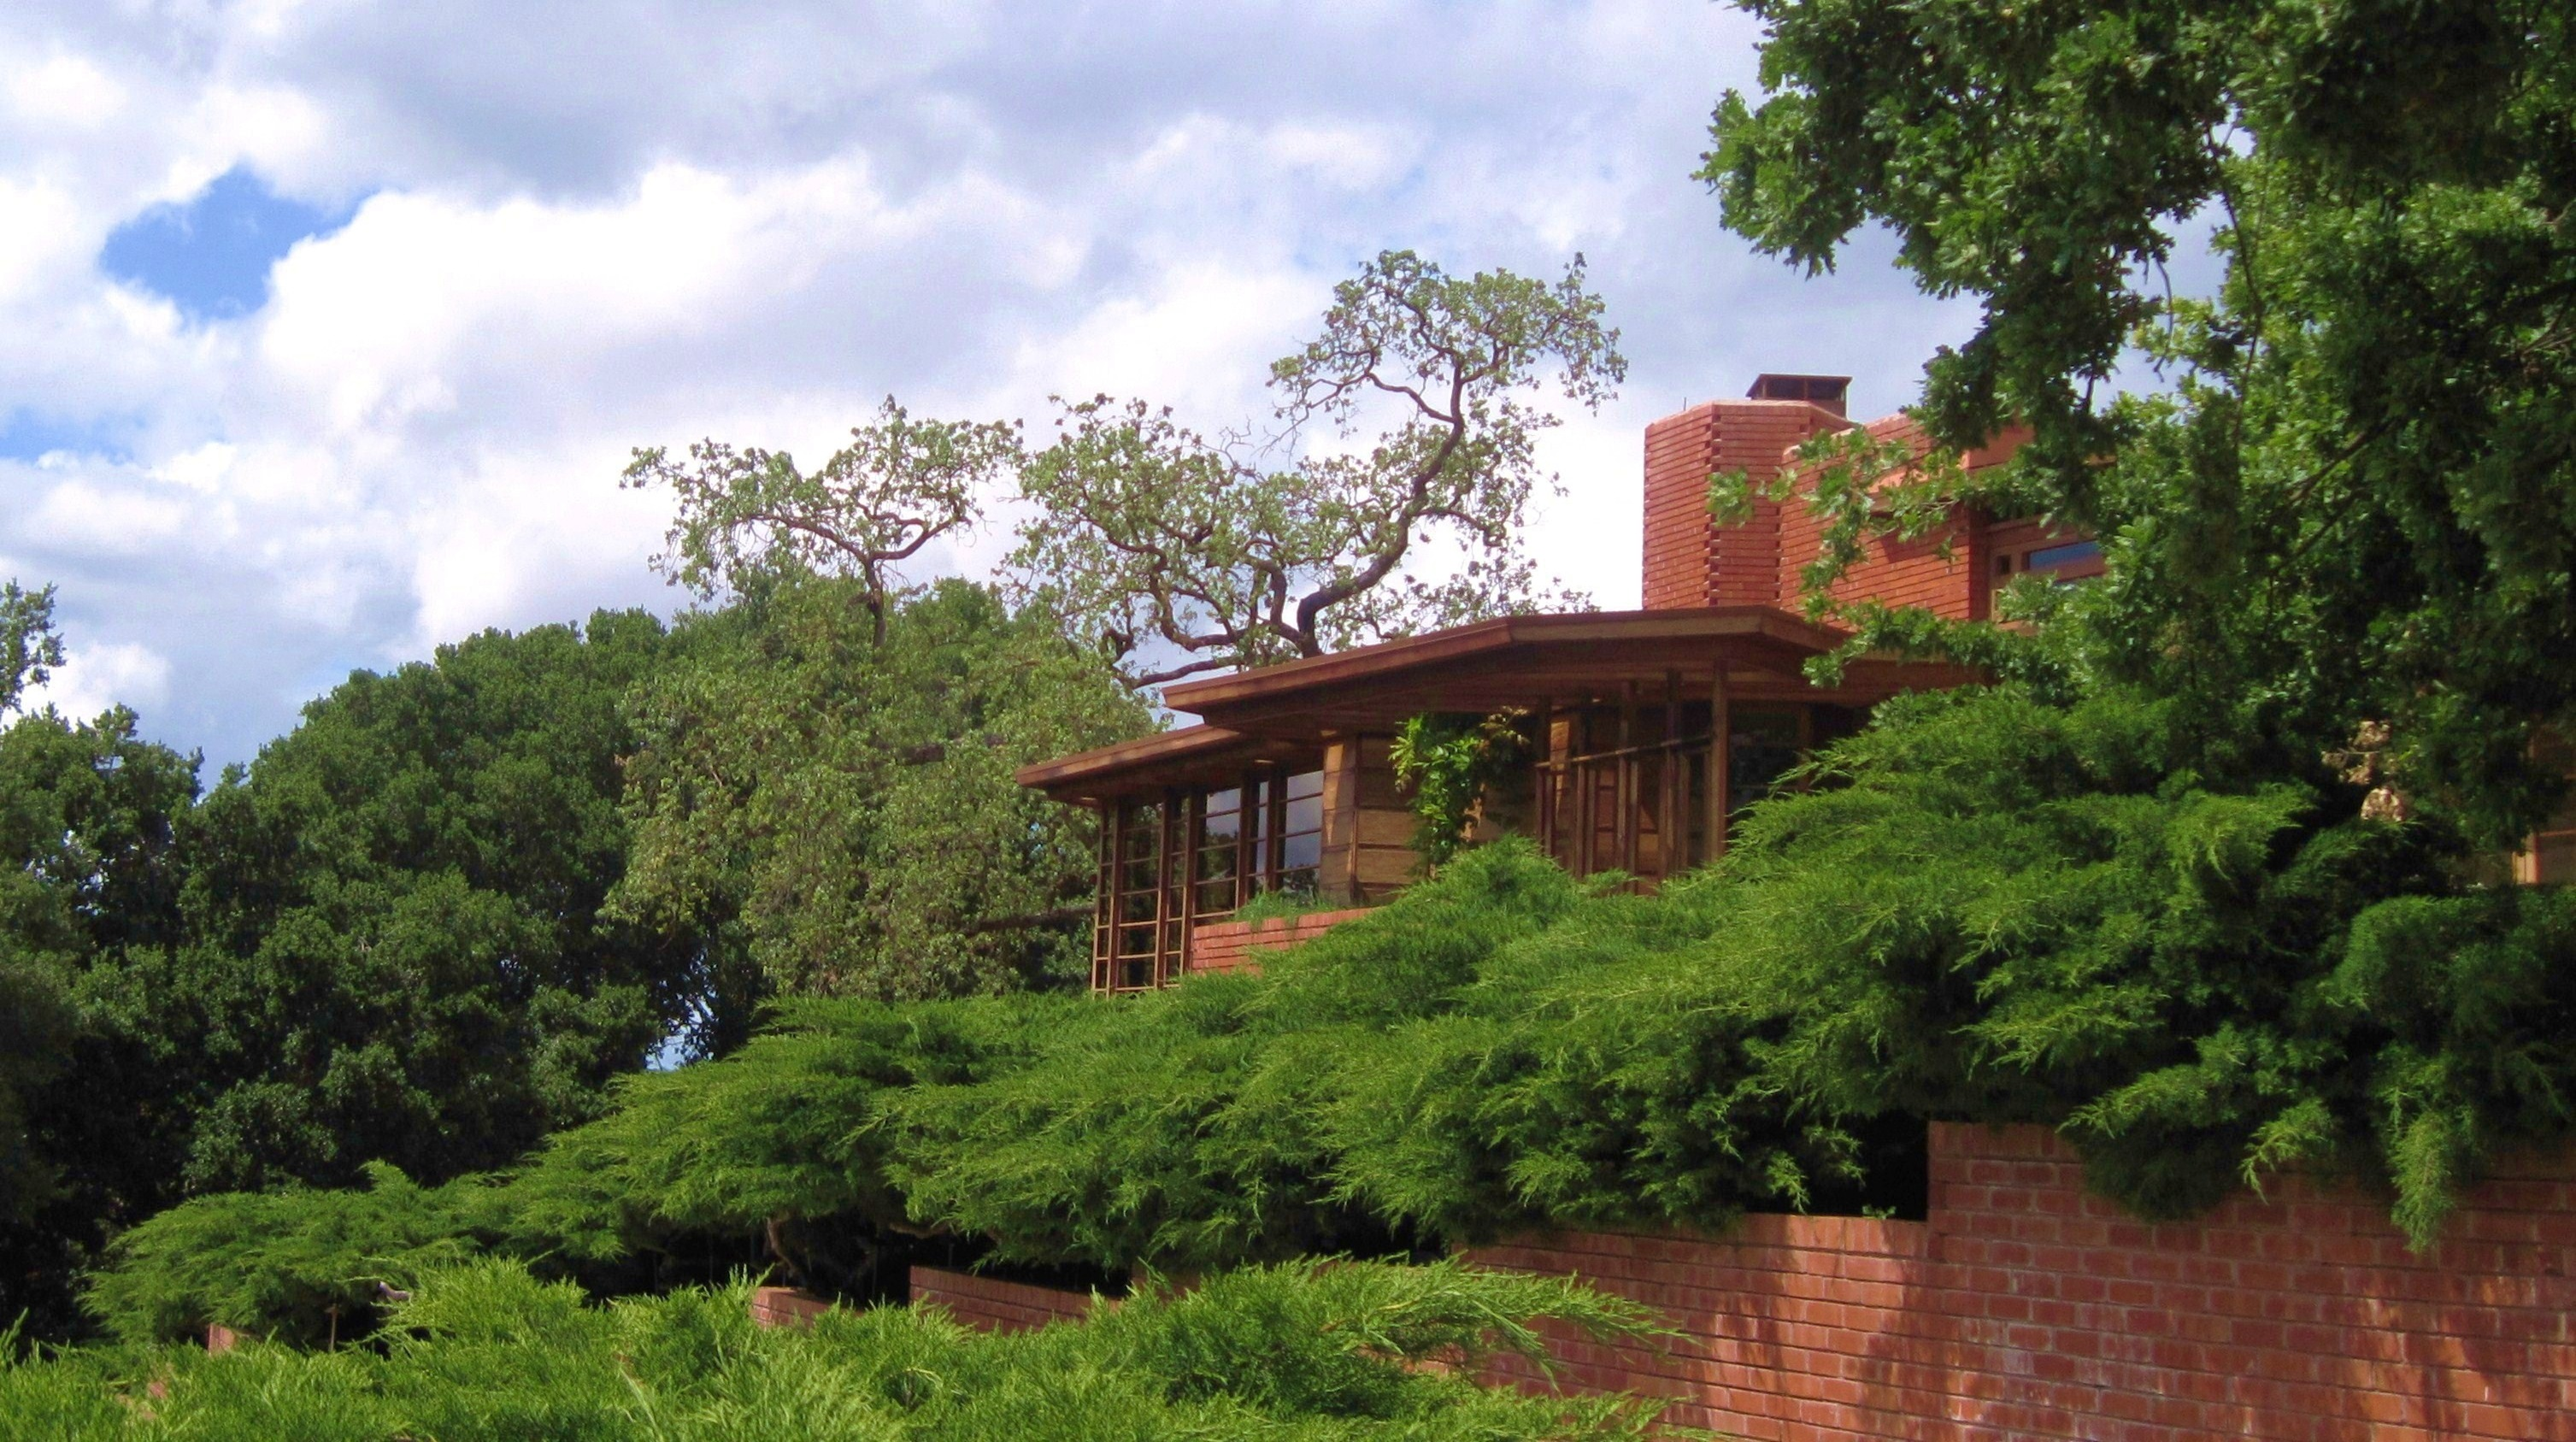 Hanna House @ Stanford University (Frank Lloyd Wright design) - Bruce Witzel photo